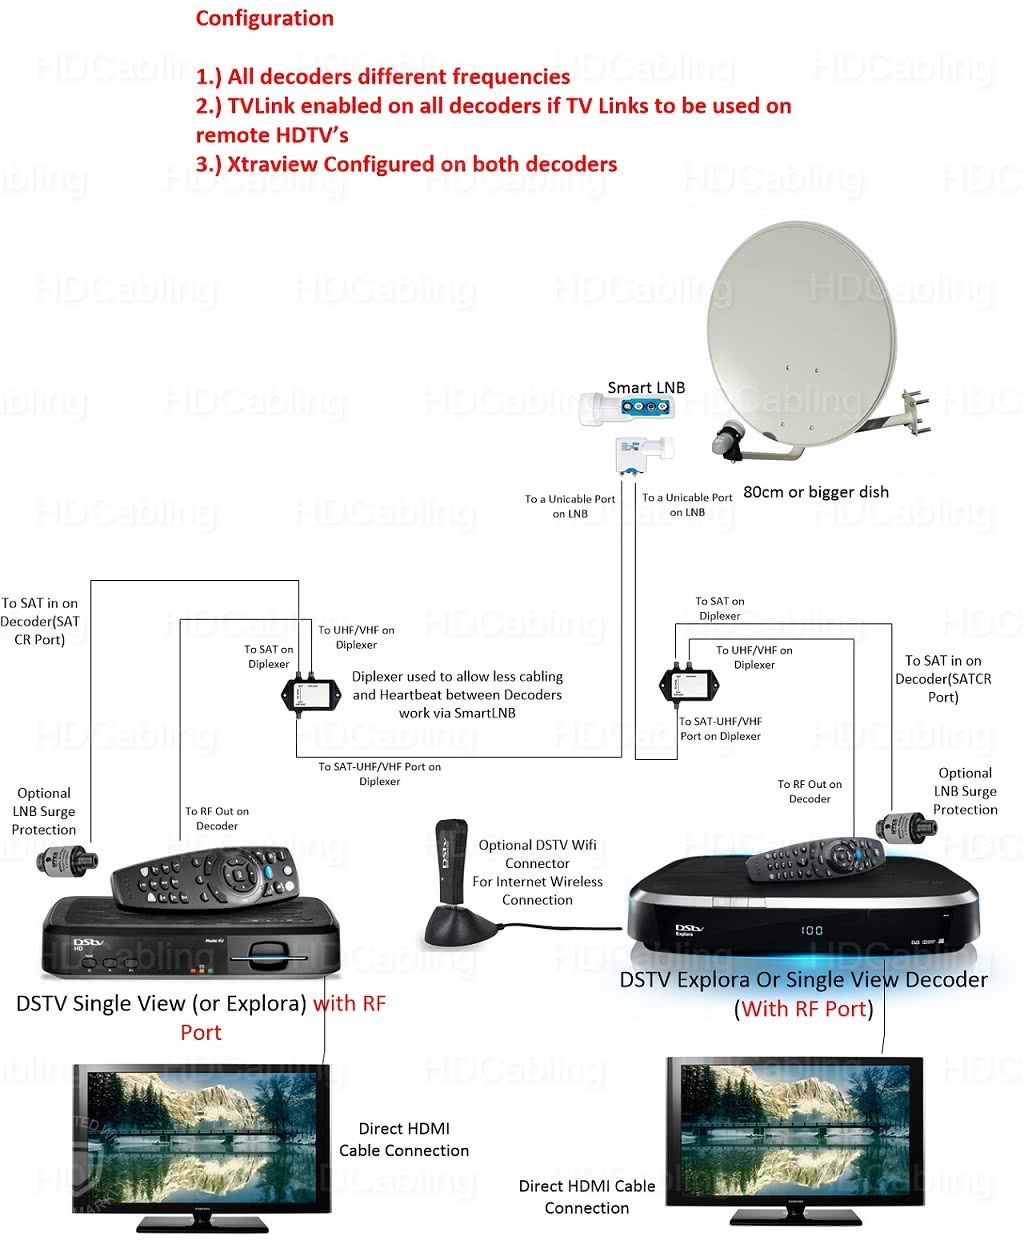 2-Port MultiChoice DSTV Smart LNB (SLNB) for Explora or Xtraview Installations